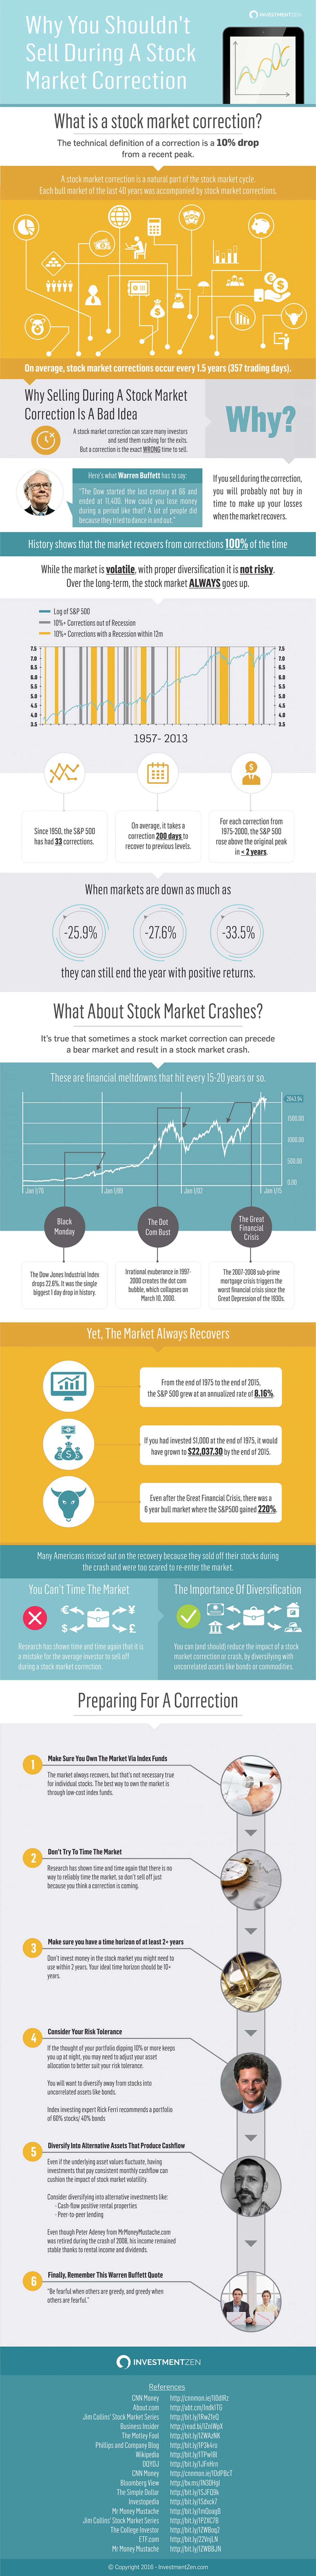 Here Is Why You Shouldn't Sell During A Stock Market Panic Infographic